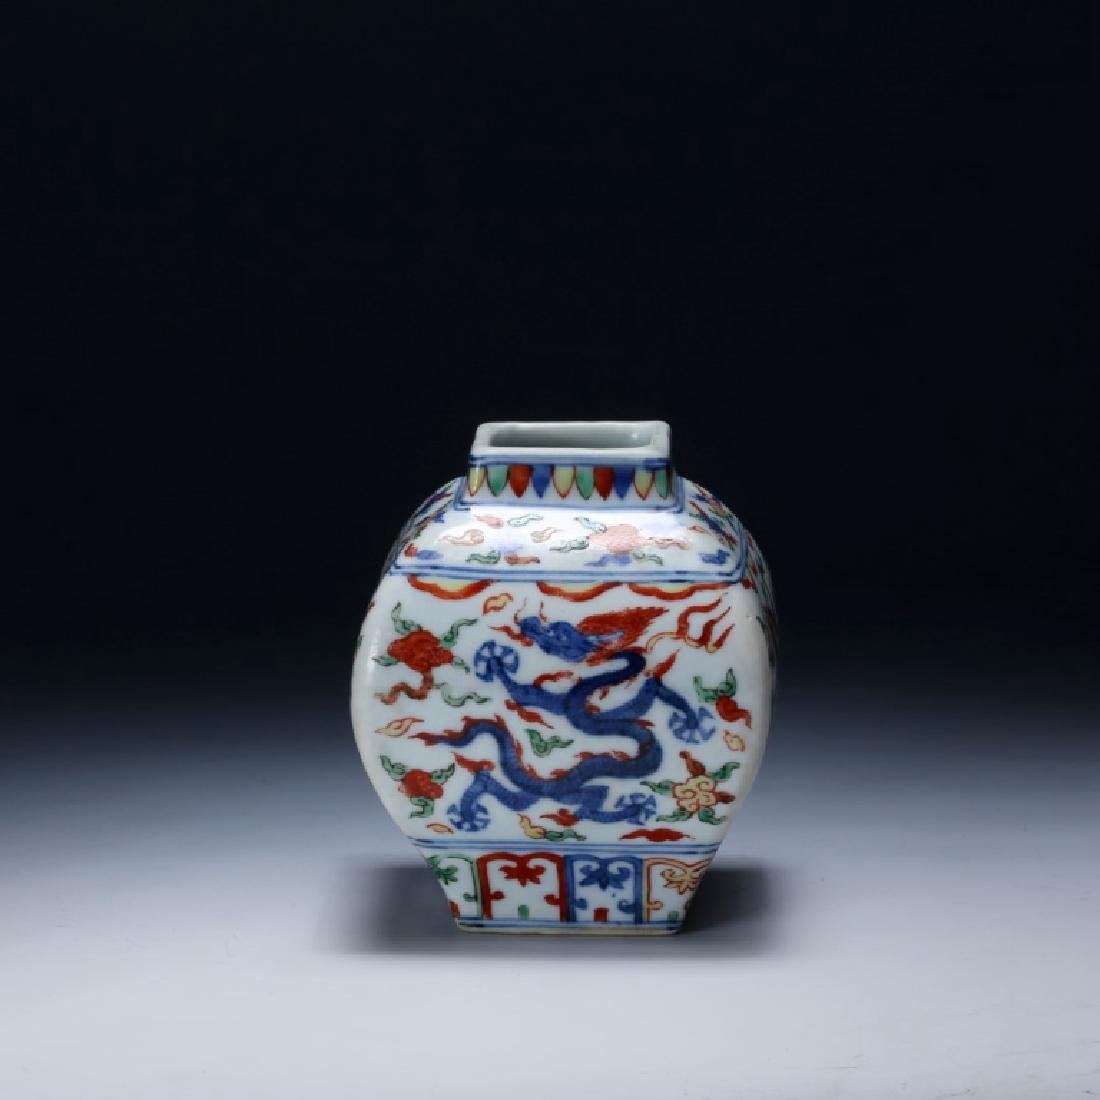 Chinese Qing Dynasty Wucai Porcelain Jar